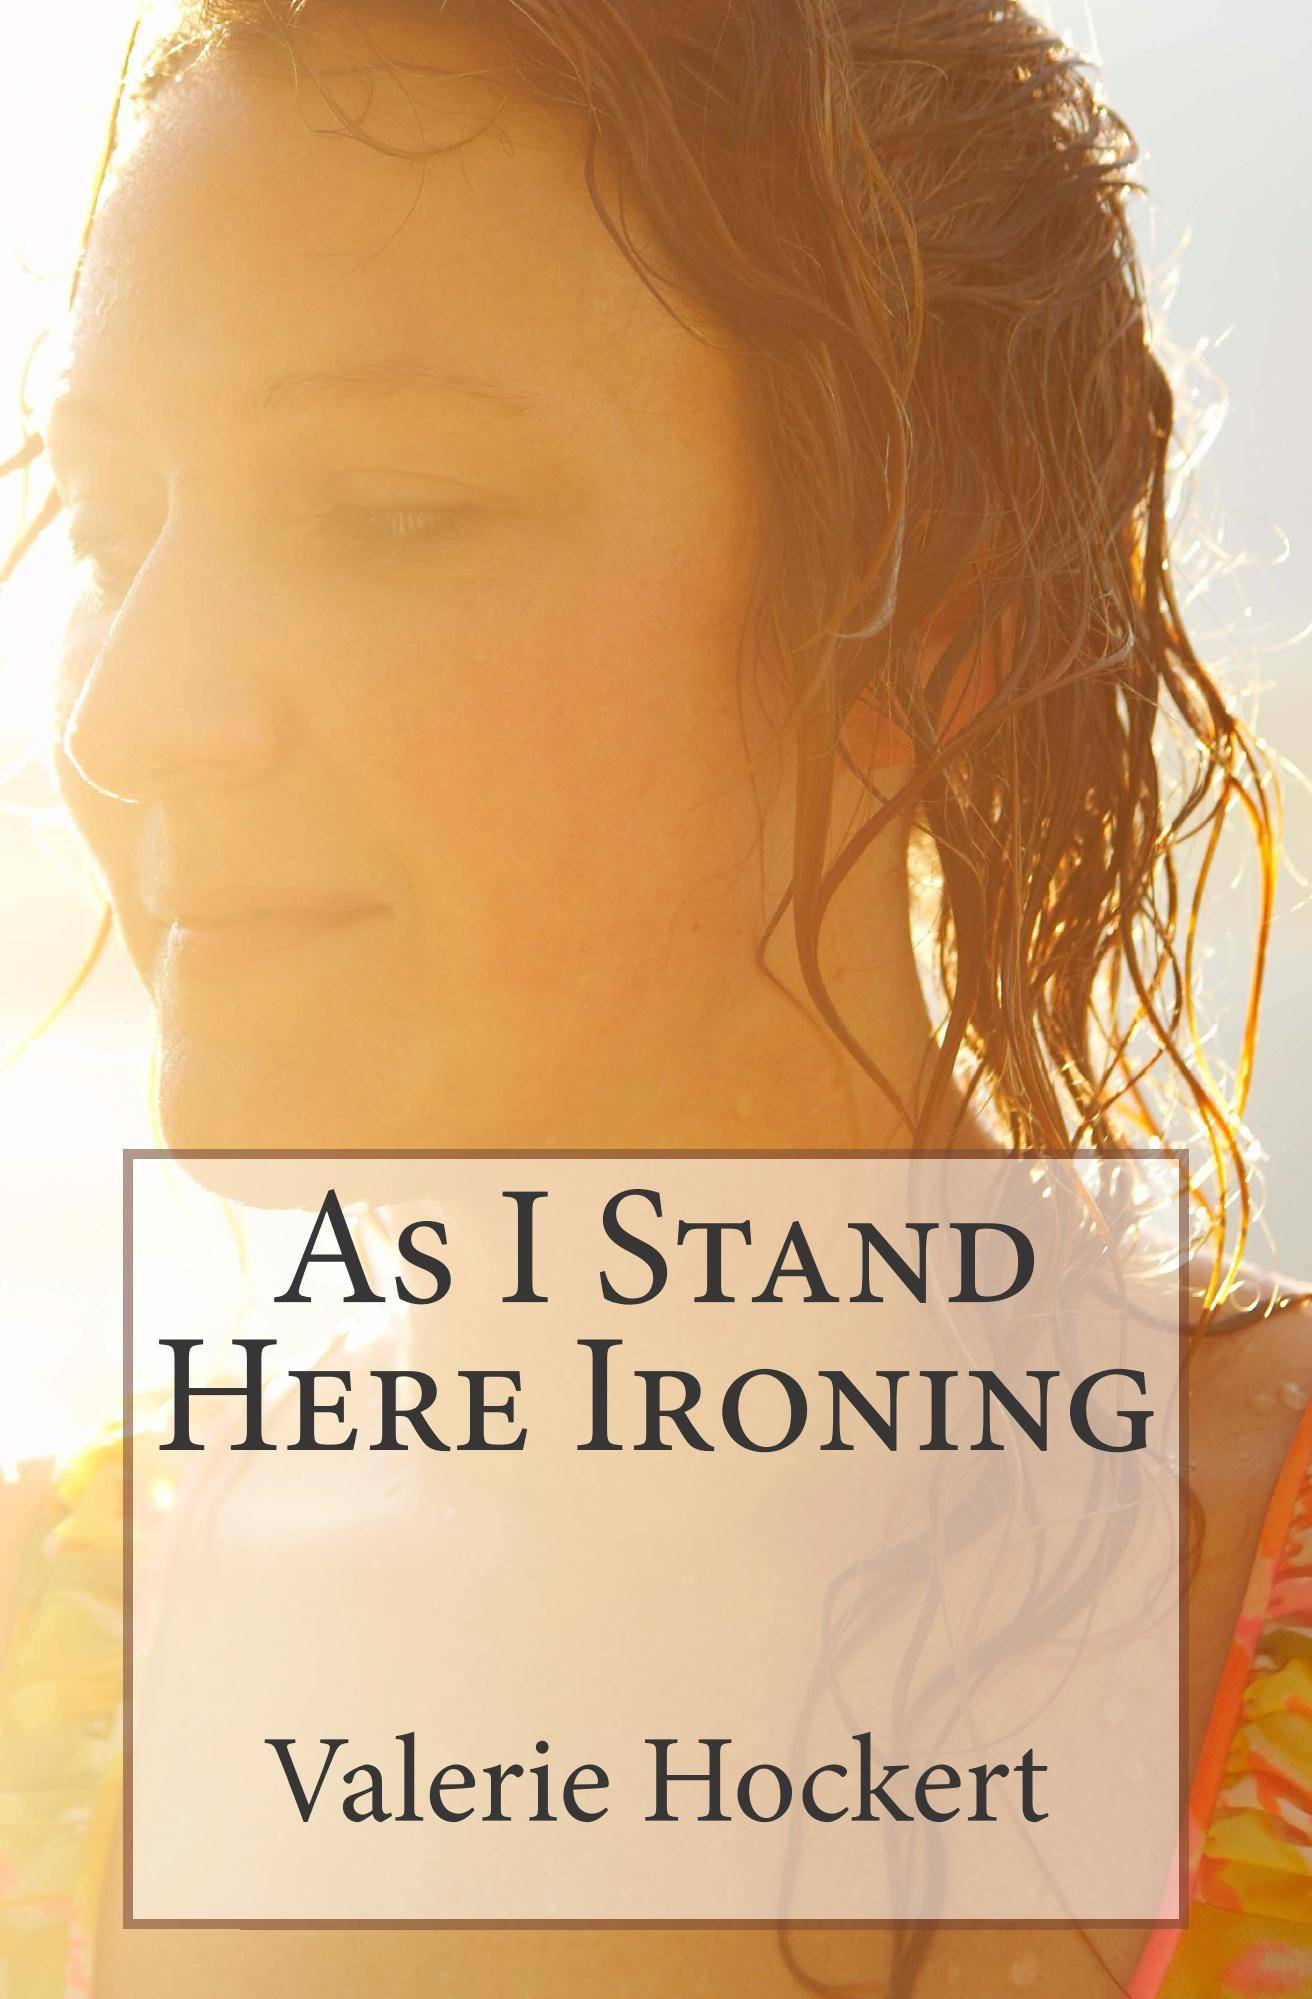 As i stand here ironing